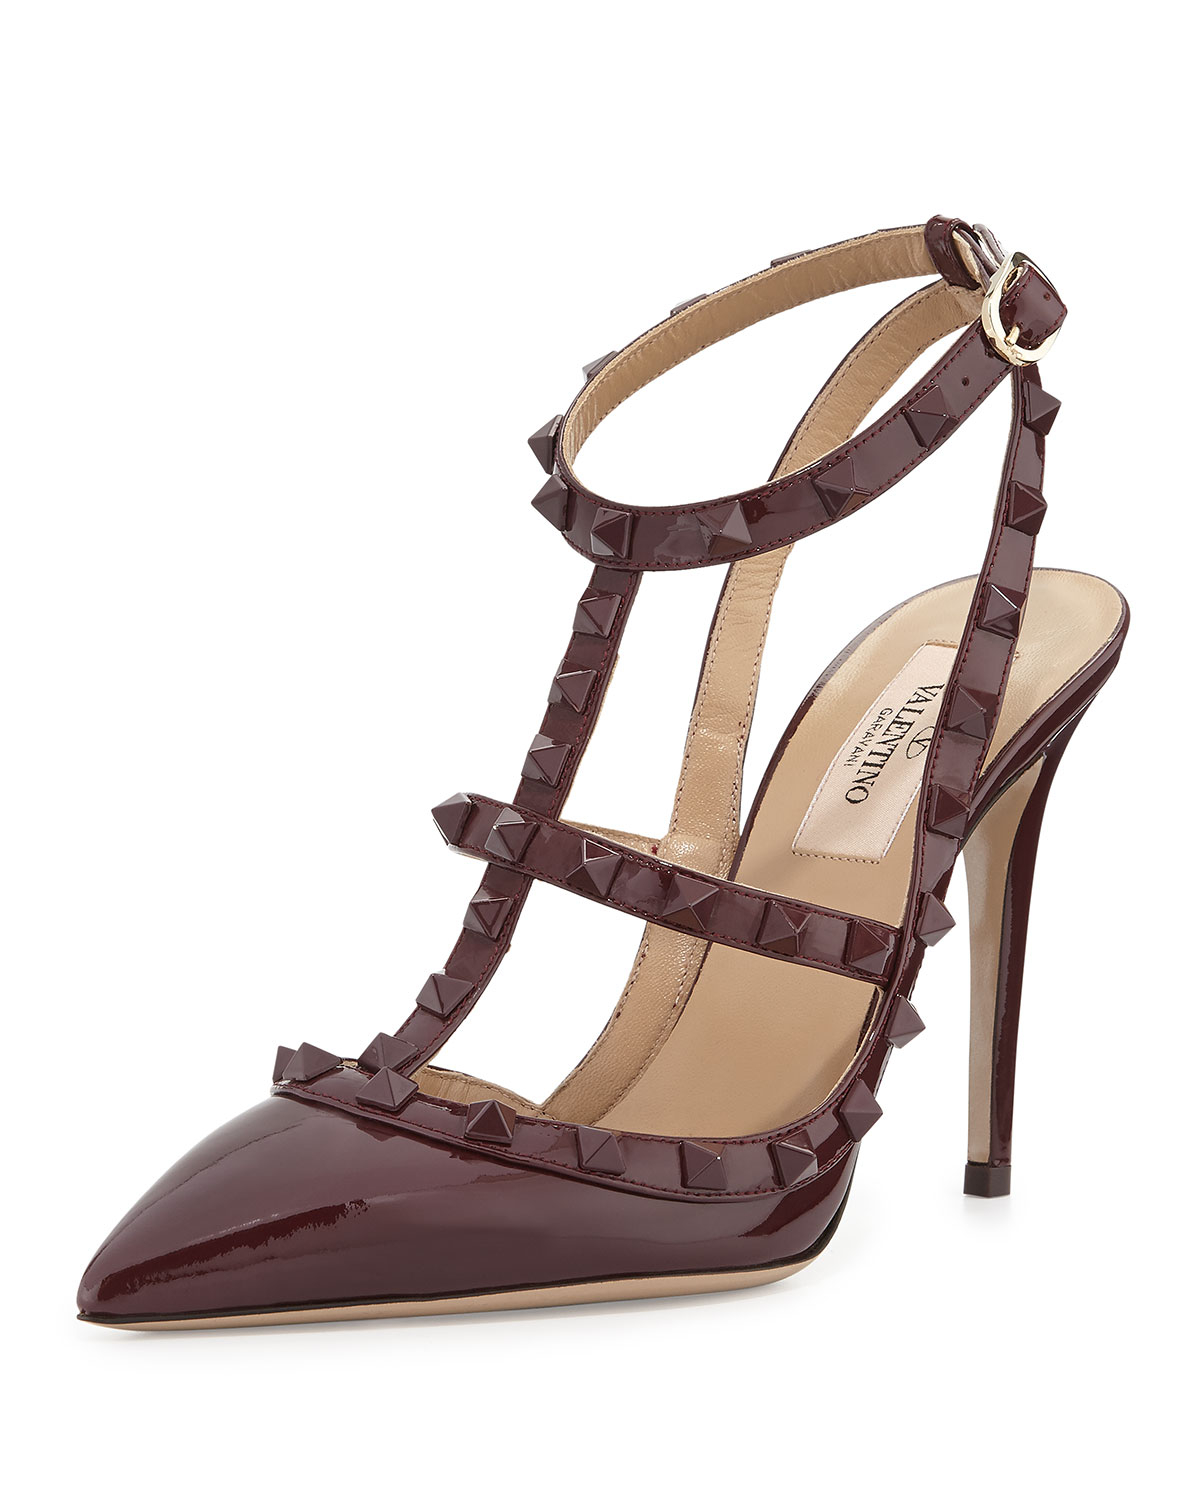 Valentino sandals shoes price - Gallery